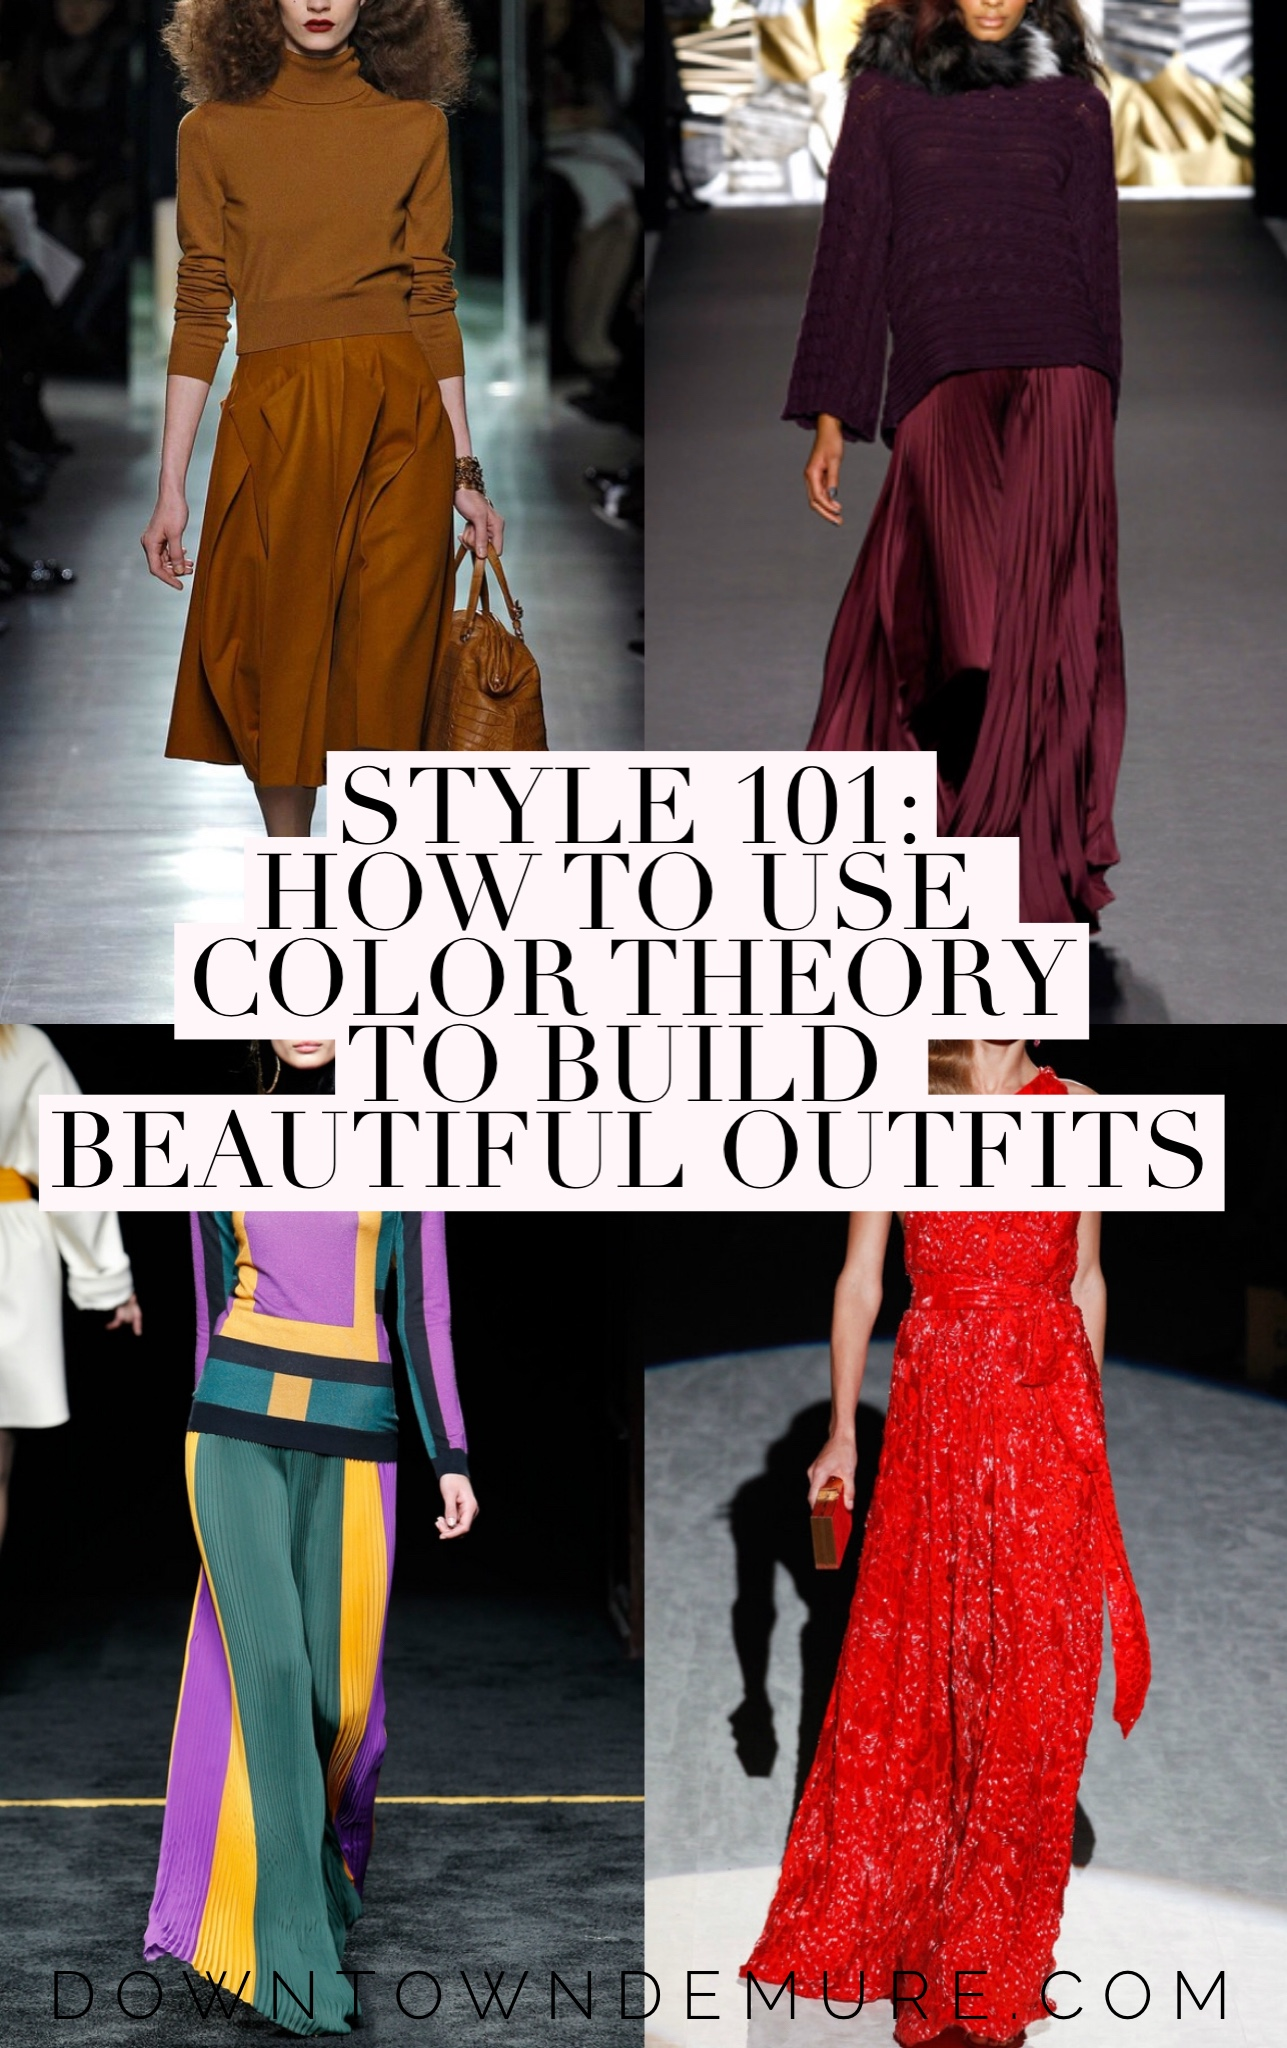 How To Use Color Theory Build Beautiful Outfits